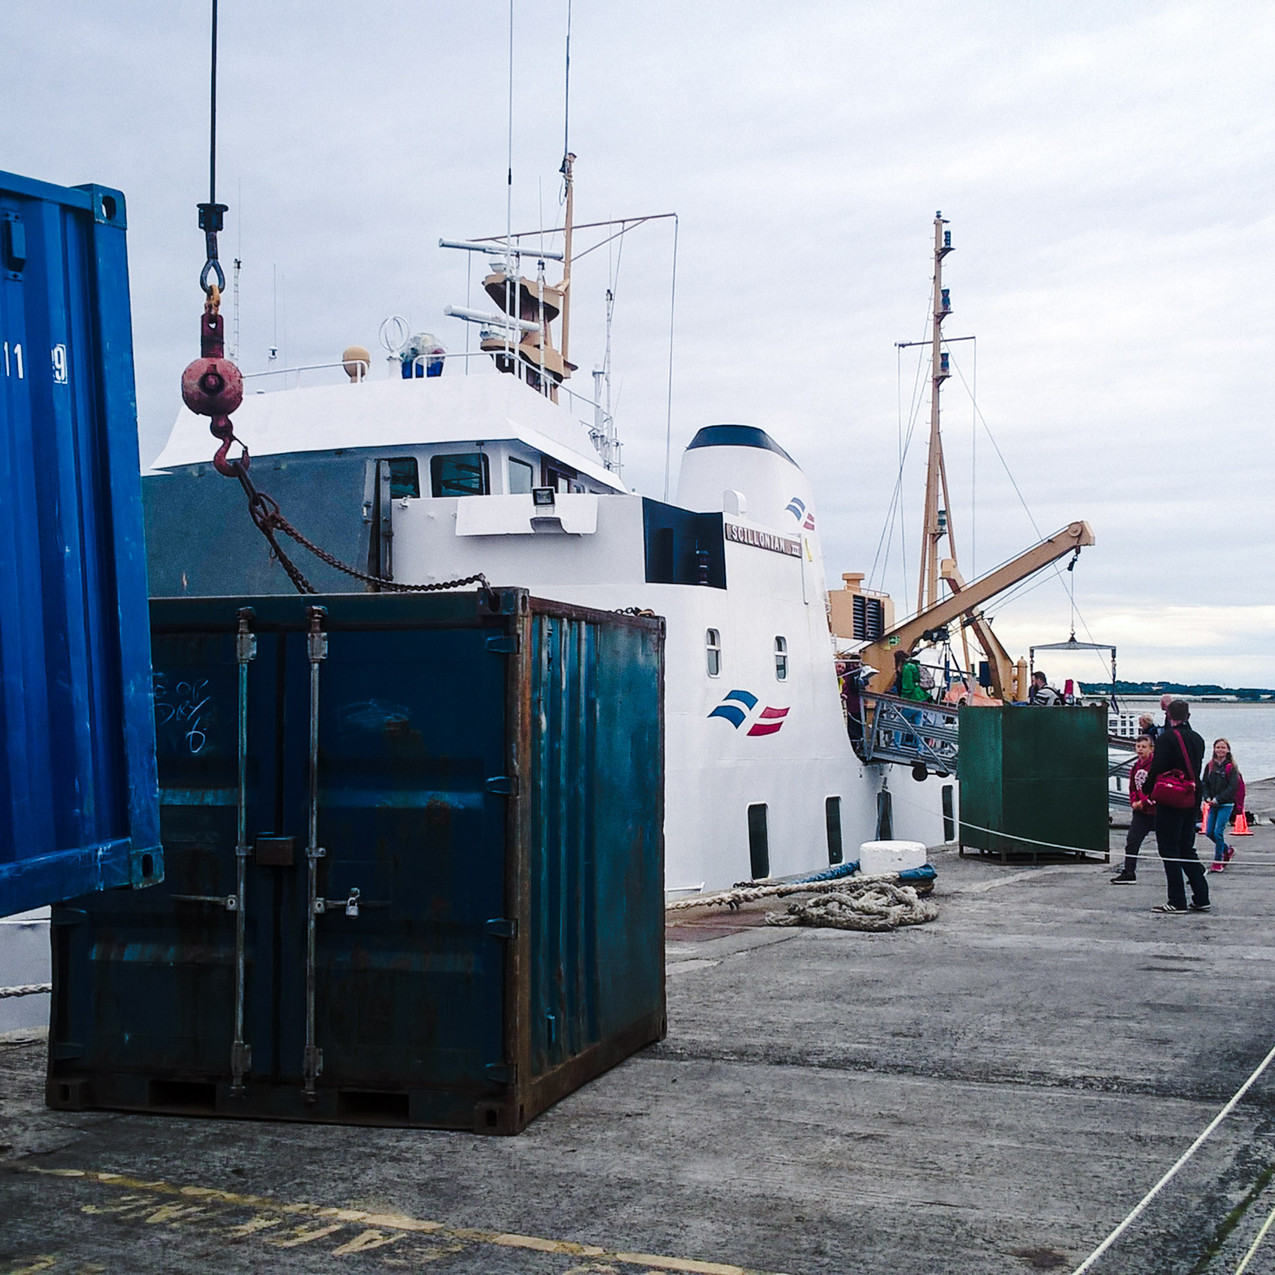 Loading the Scillonian III